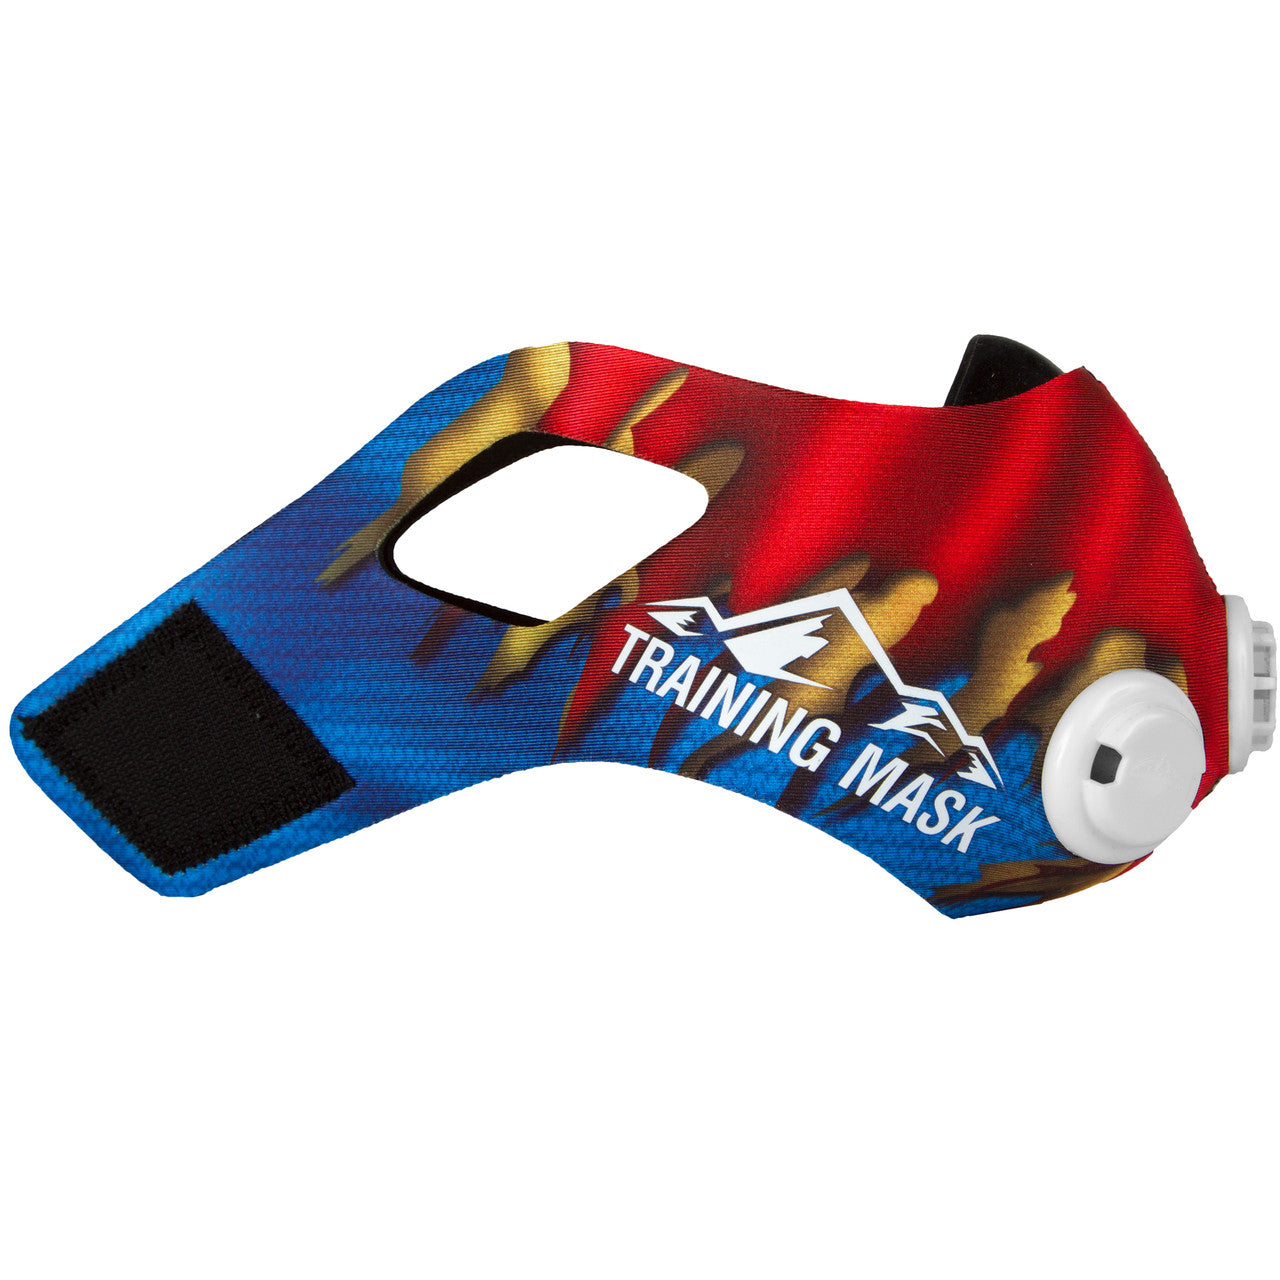 Training Mask 2.0 Super Steel Sleeve